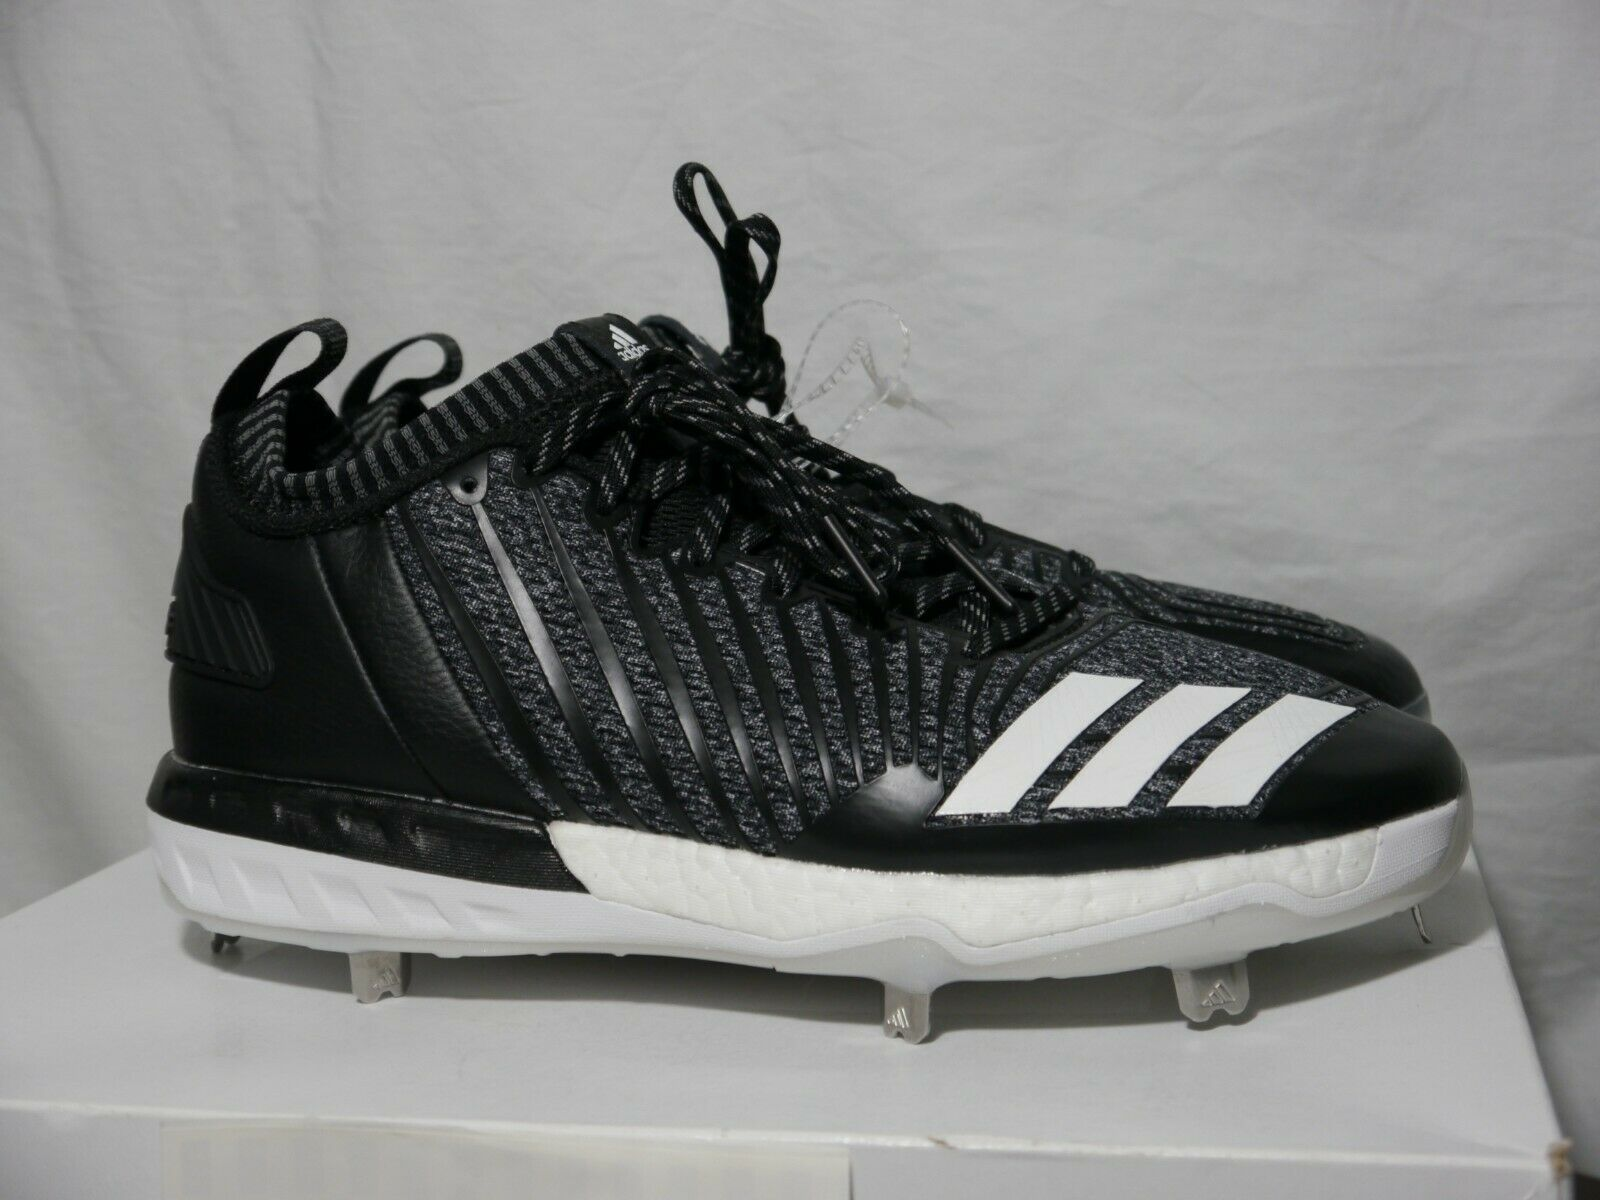 100% authentic e50d0 be2d2 Adidas Boost Icon 3 Men s Metal Baseball Cleats Size 9 BY39165